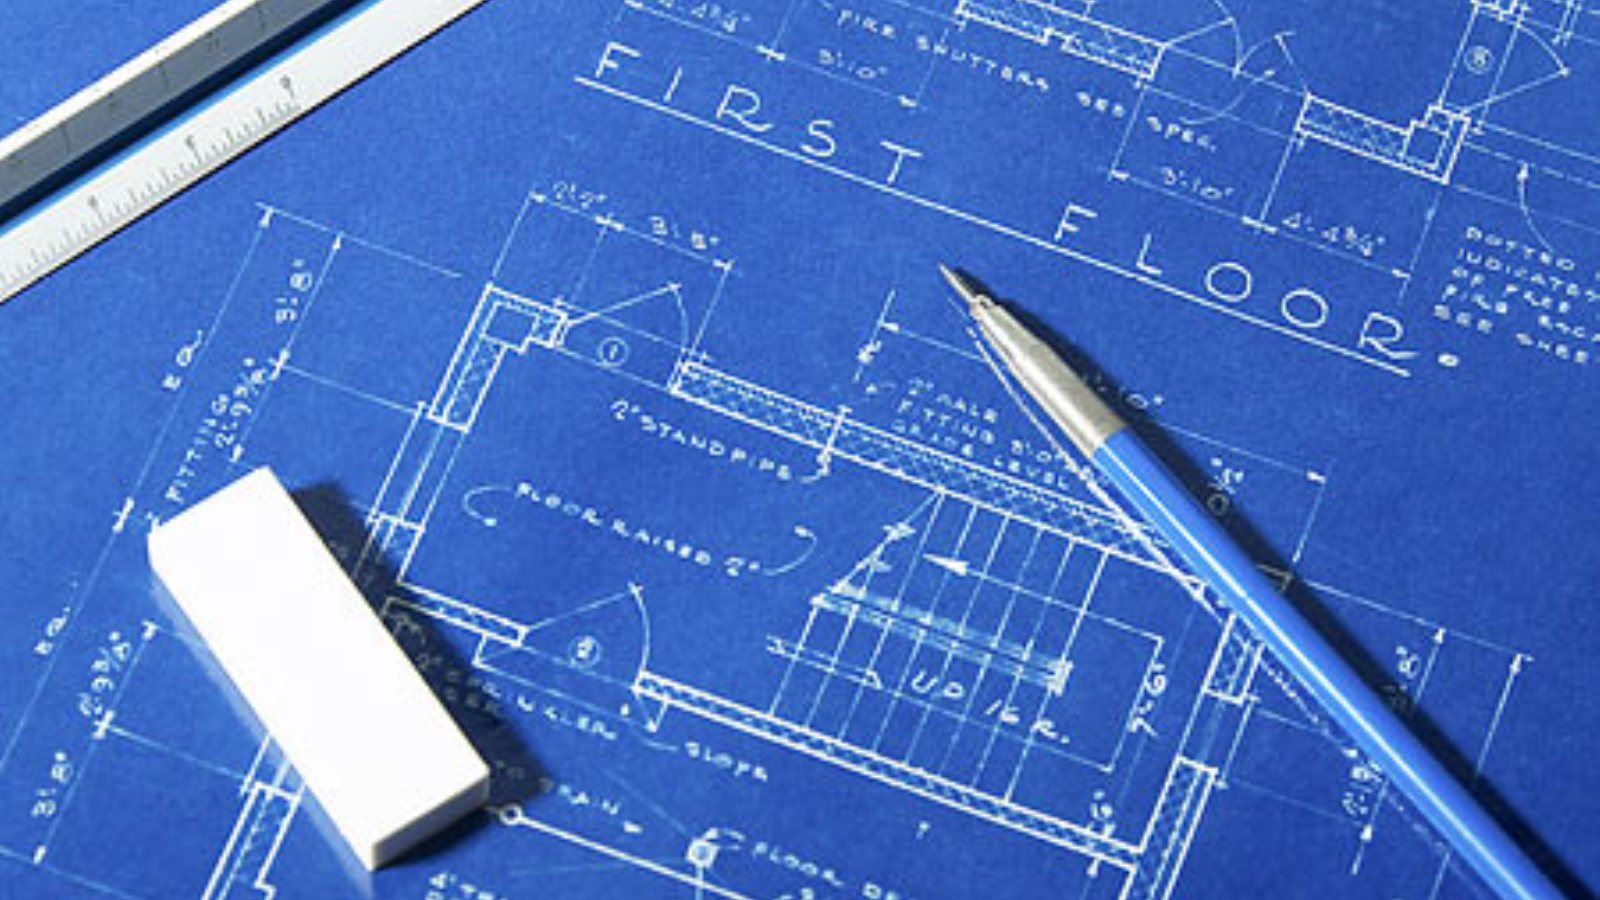 Did you know blueprints home check plus a blueprint is a reproduction of a technical drawing documenting an architecture or an engineering design using a contact print process on light sensitive malvernweather Images